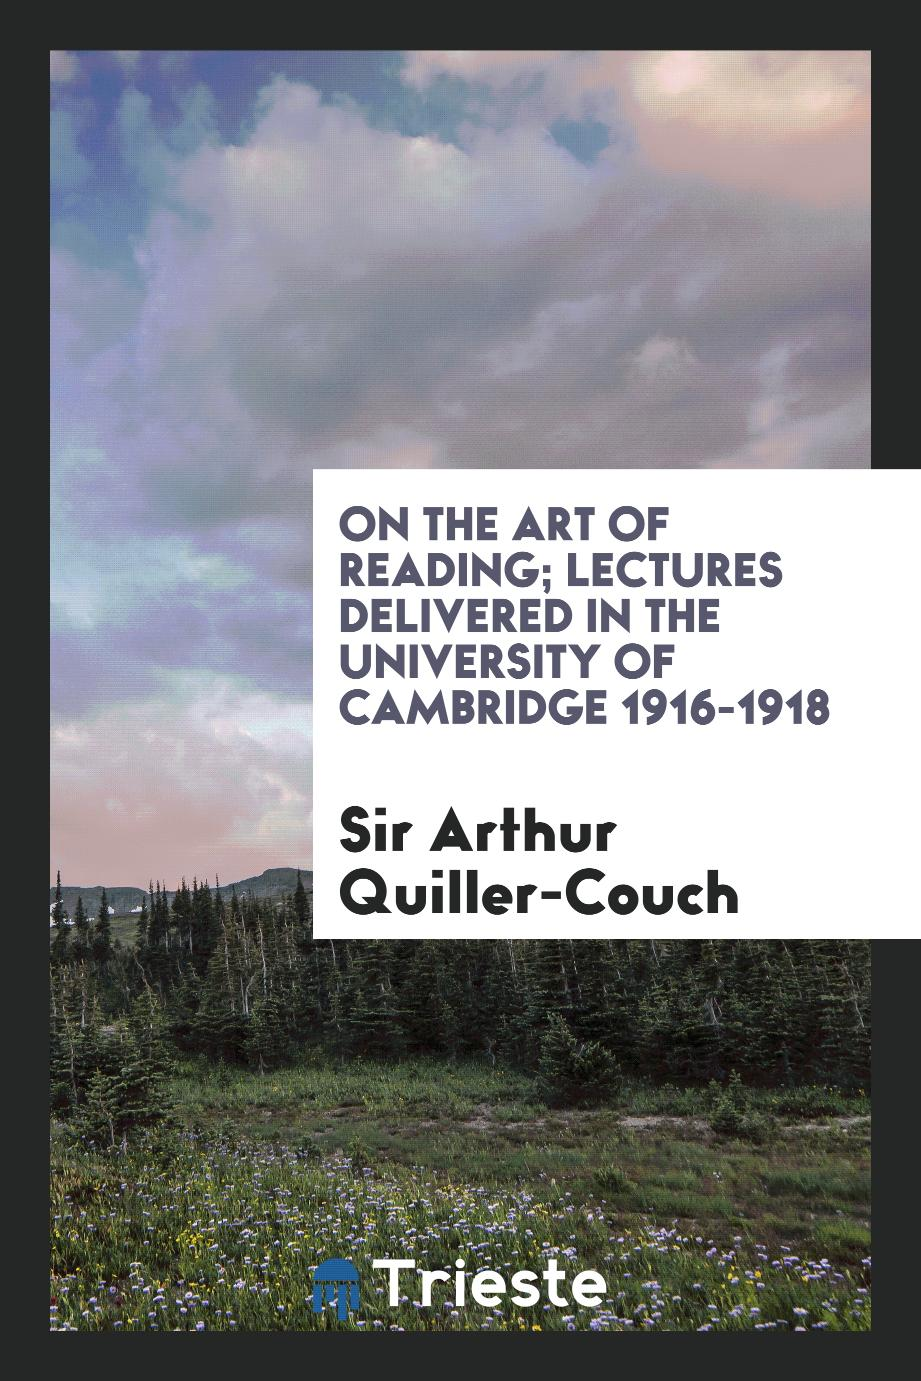 On the art of reading; Lectures delivered in the university of cambridge 1916-1918